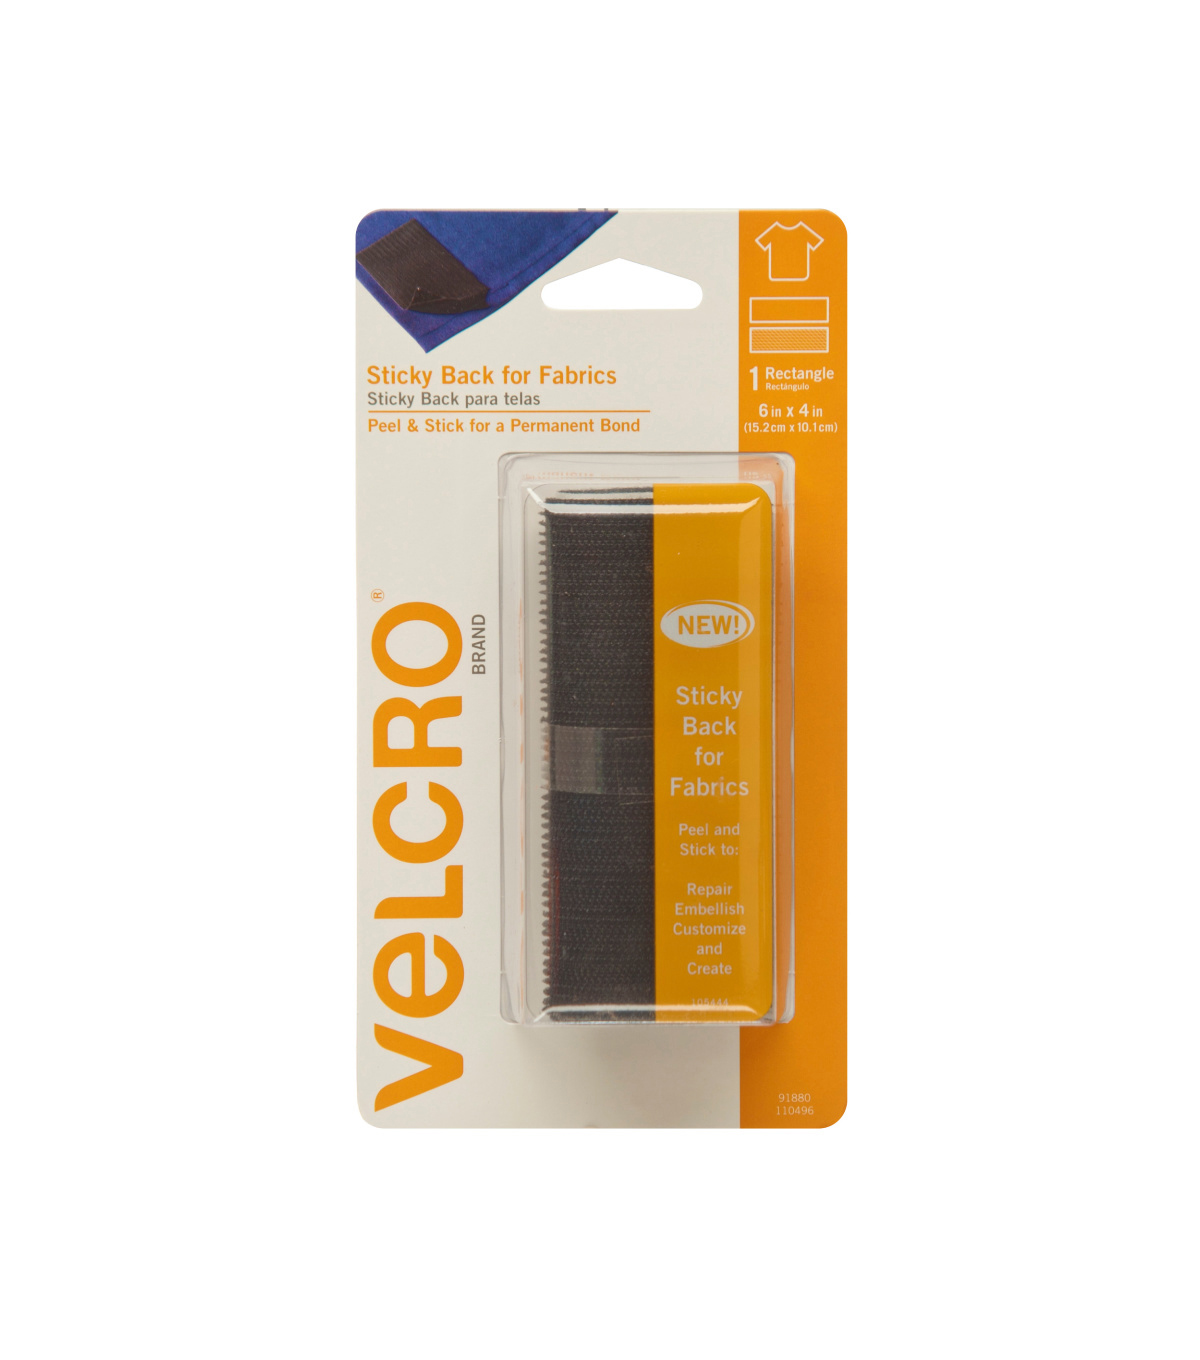 VELCRO Brand Sticky Back for Fabrics 24in x 3/4in Tape, Black